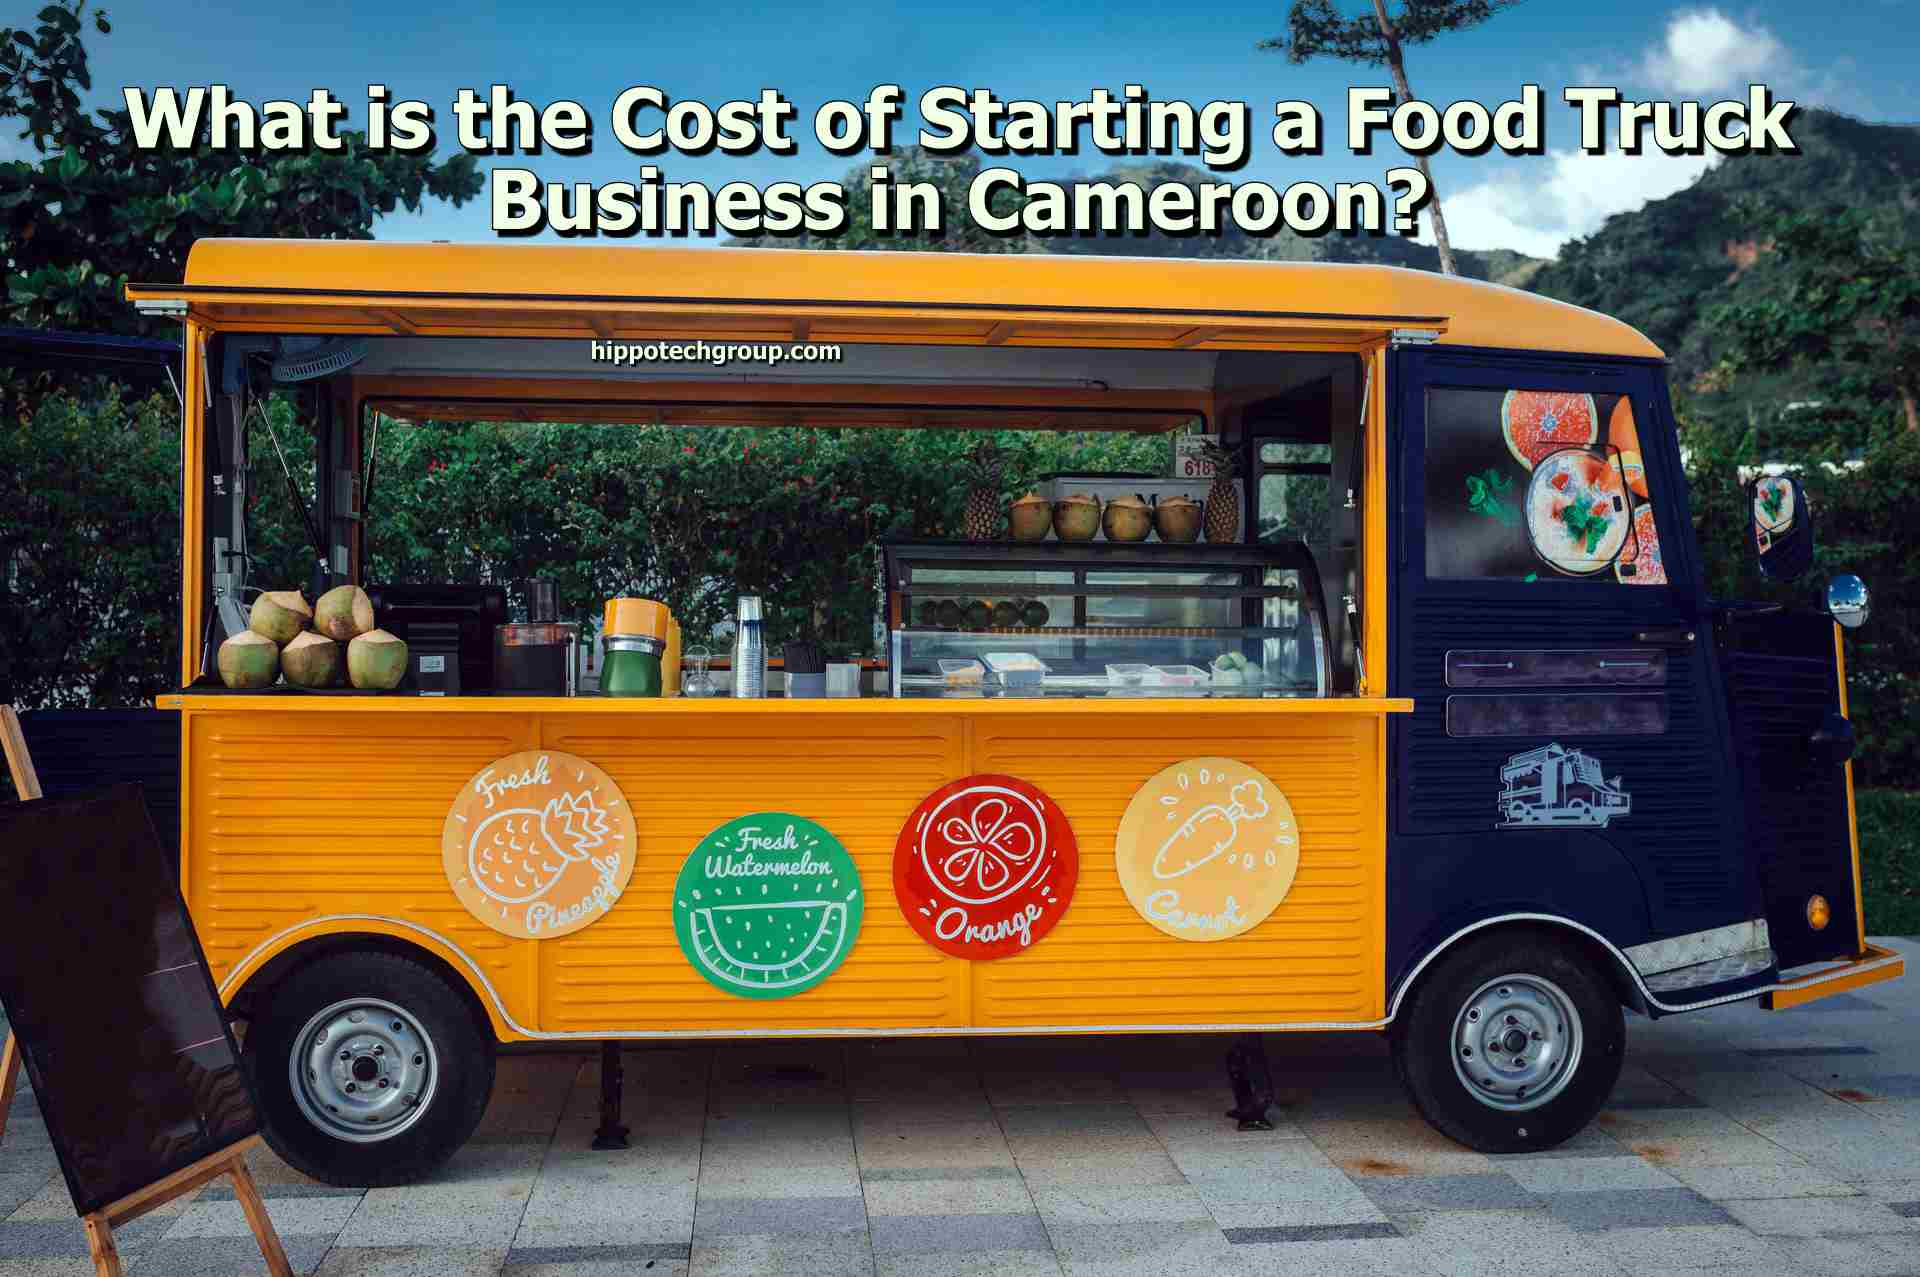 What is the Cost of Starting a Food Truck Business in Cameroon?